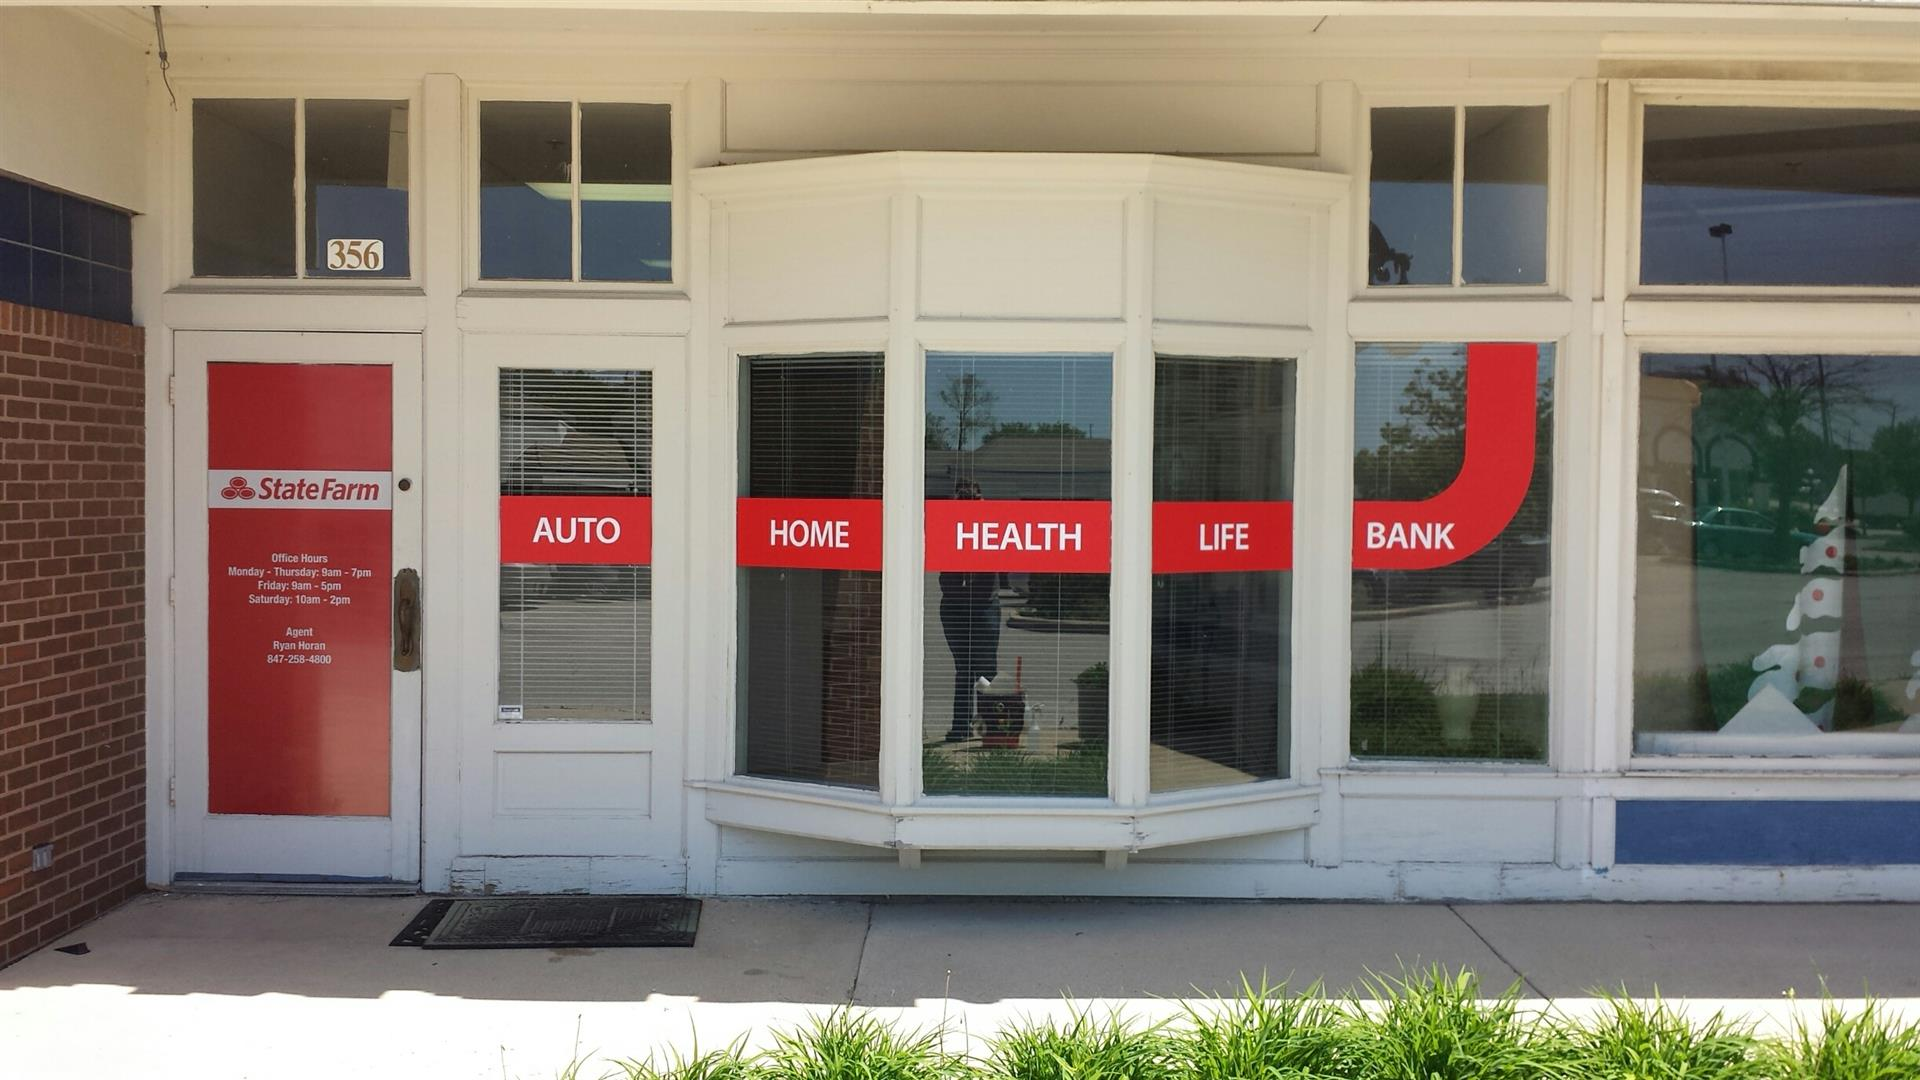 State Farm Insurance Storefront Graphic